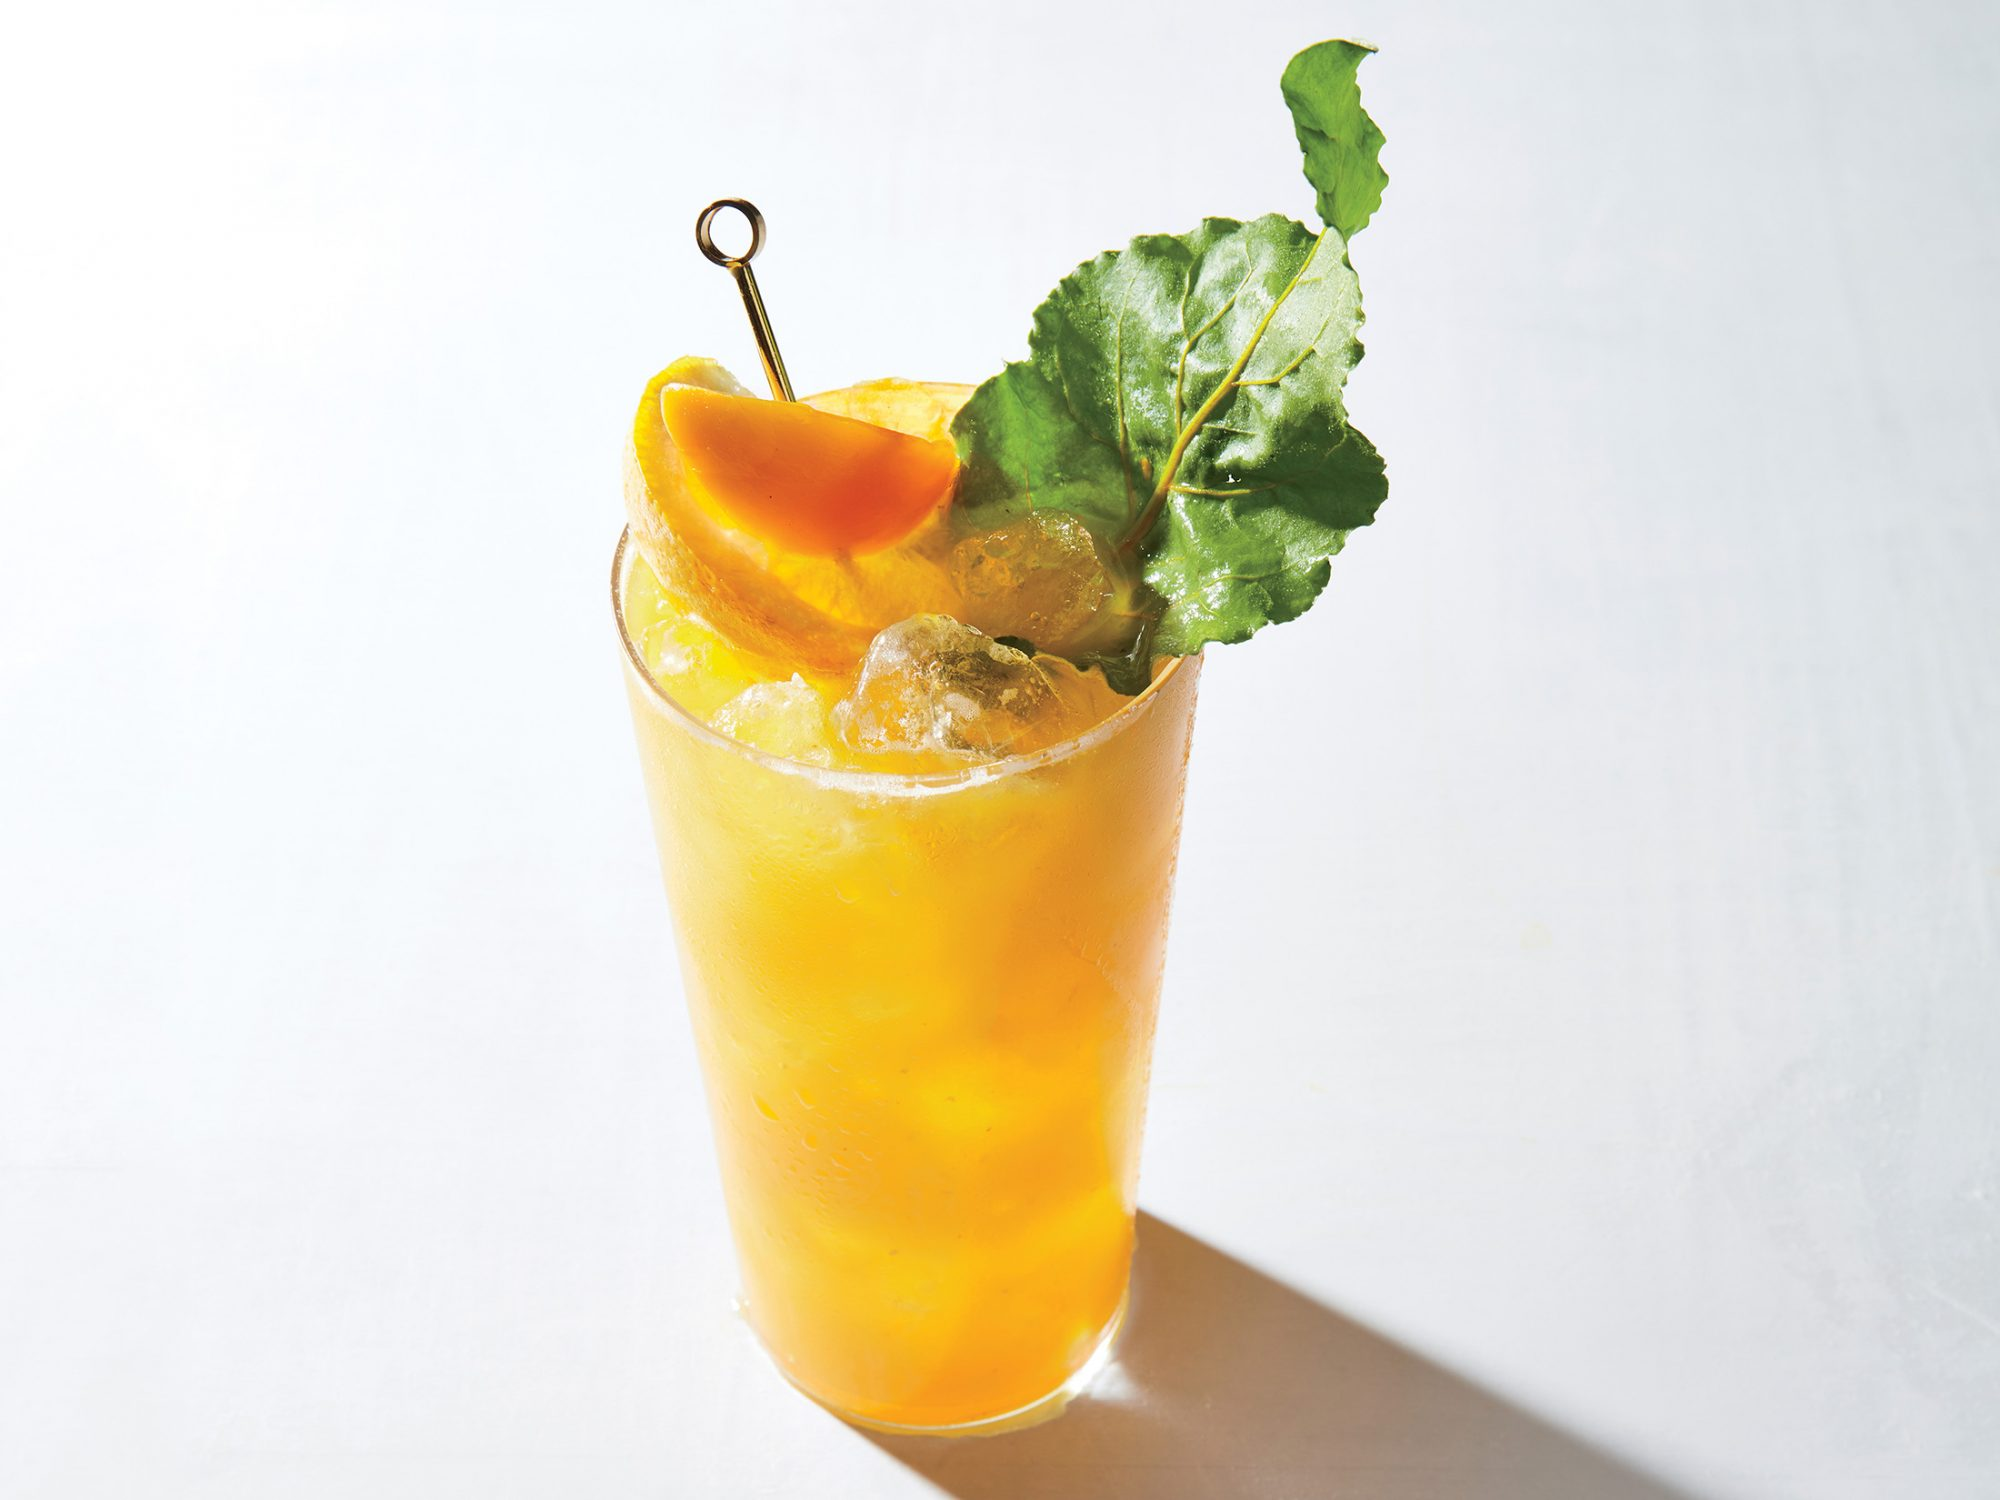 Brighten Brunch With a Golden Beet Bloody Mary